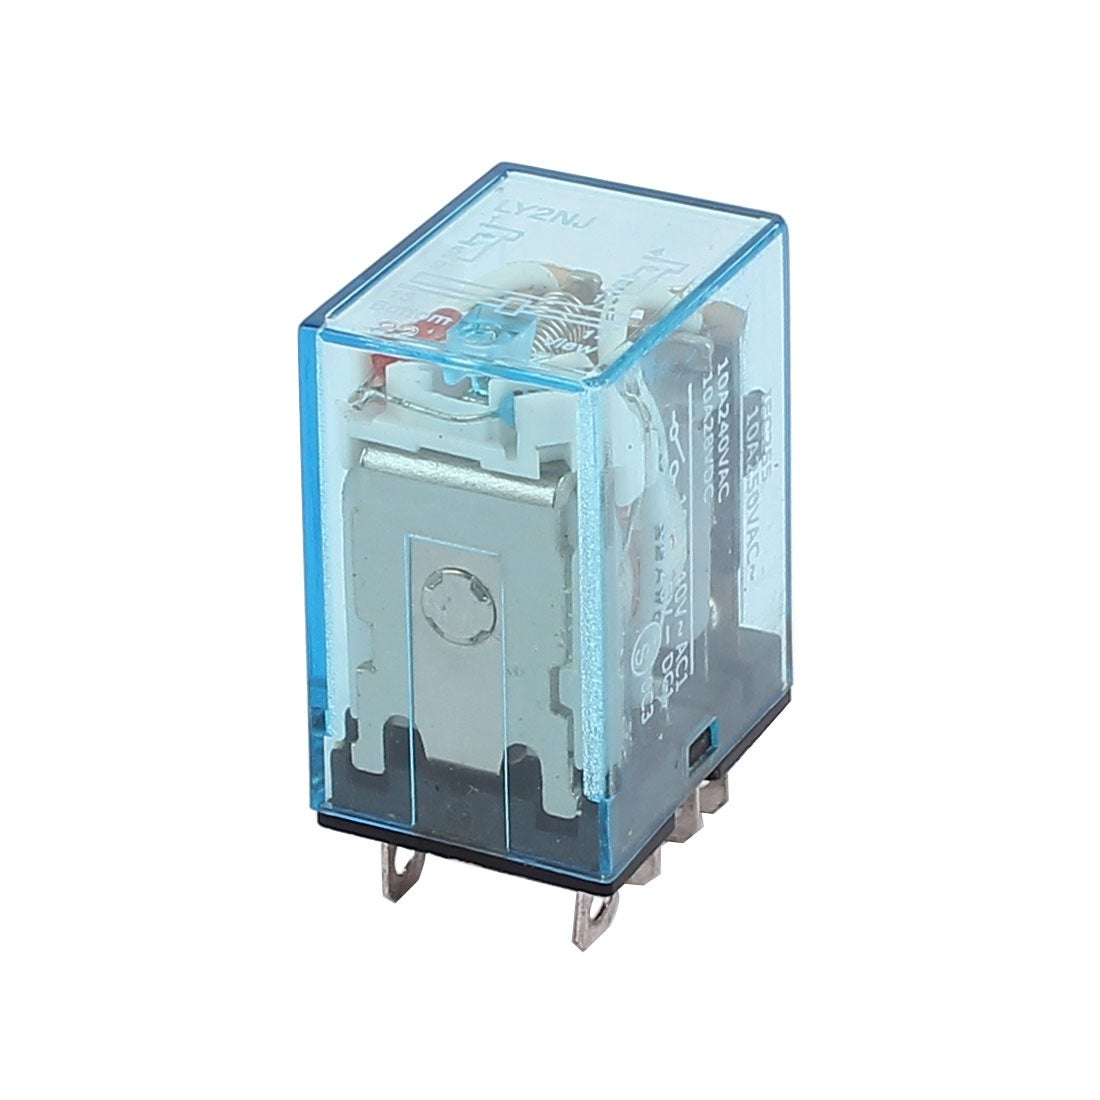 Shop Ly2nj Ac200 220v Coil General Purpose Power Relay 8pin 10a Ac Electrical Quiz 240v Dc 28v Free Shipping On Orders Over 45 18260699